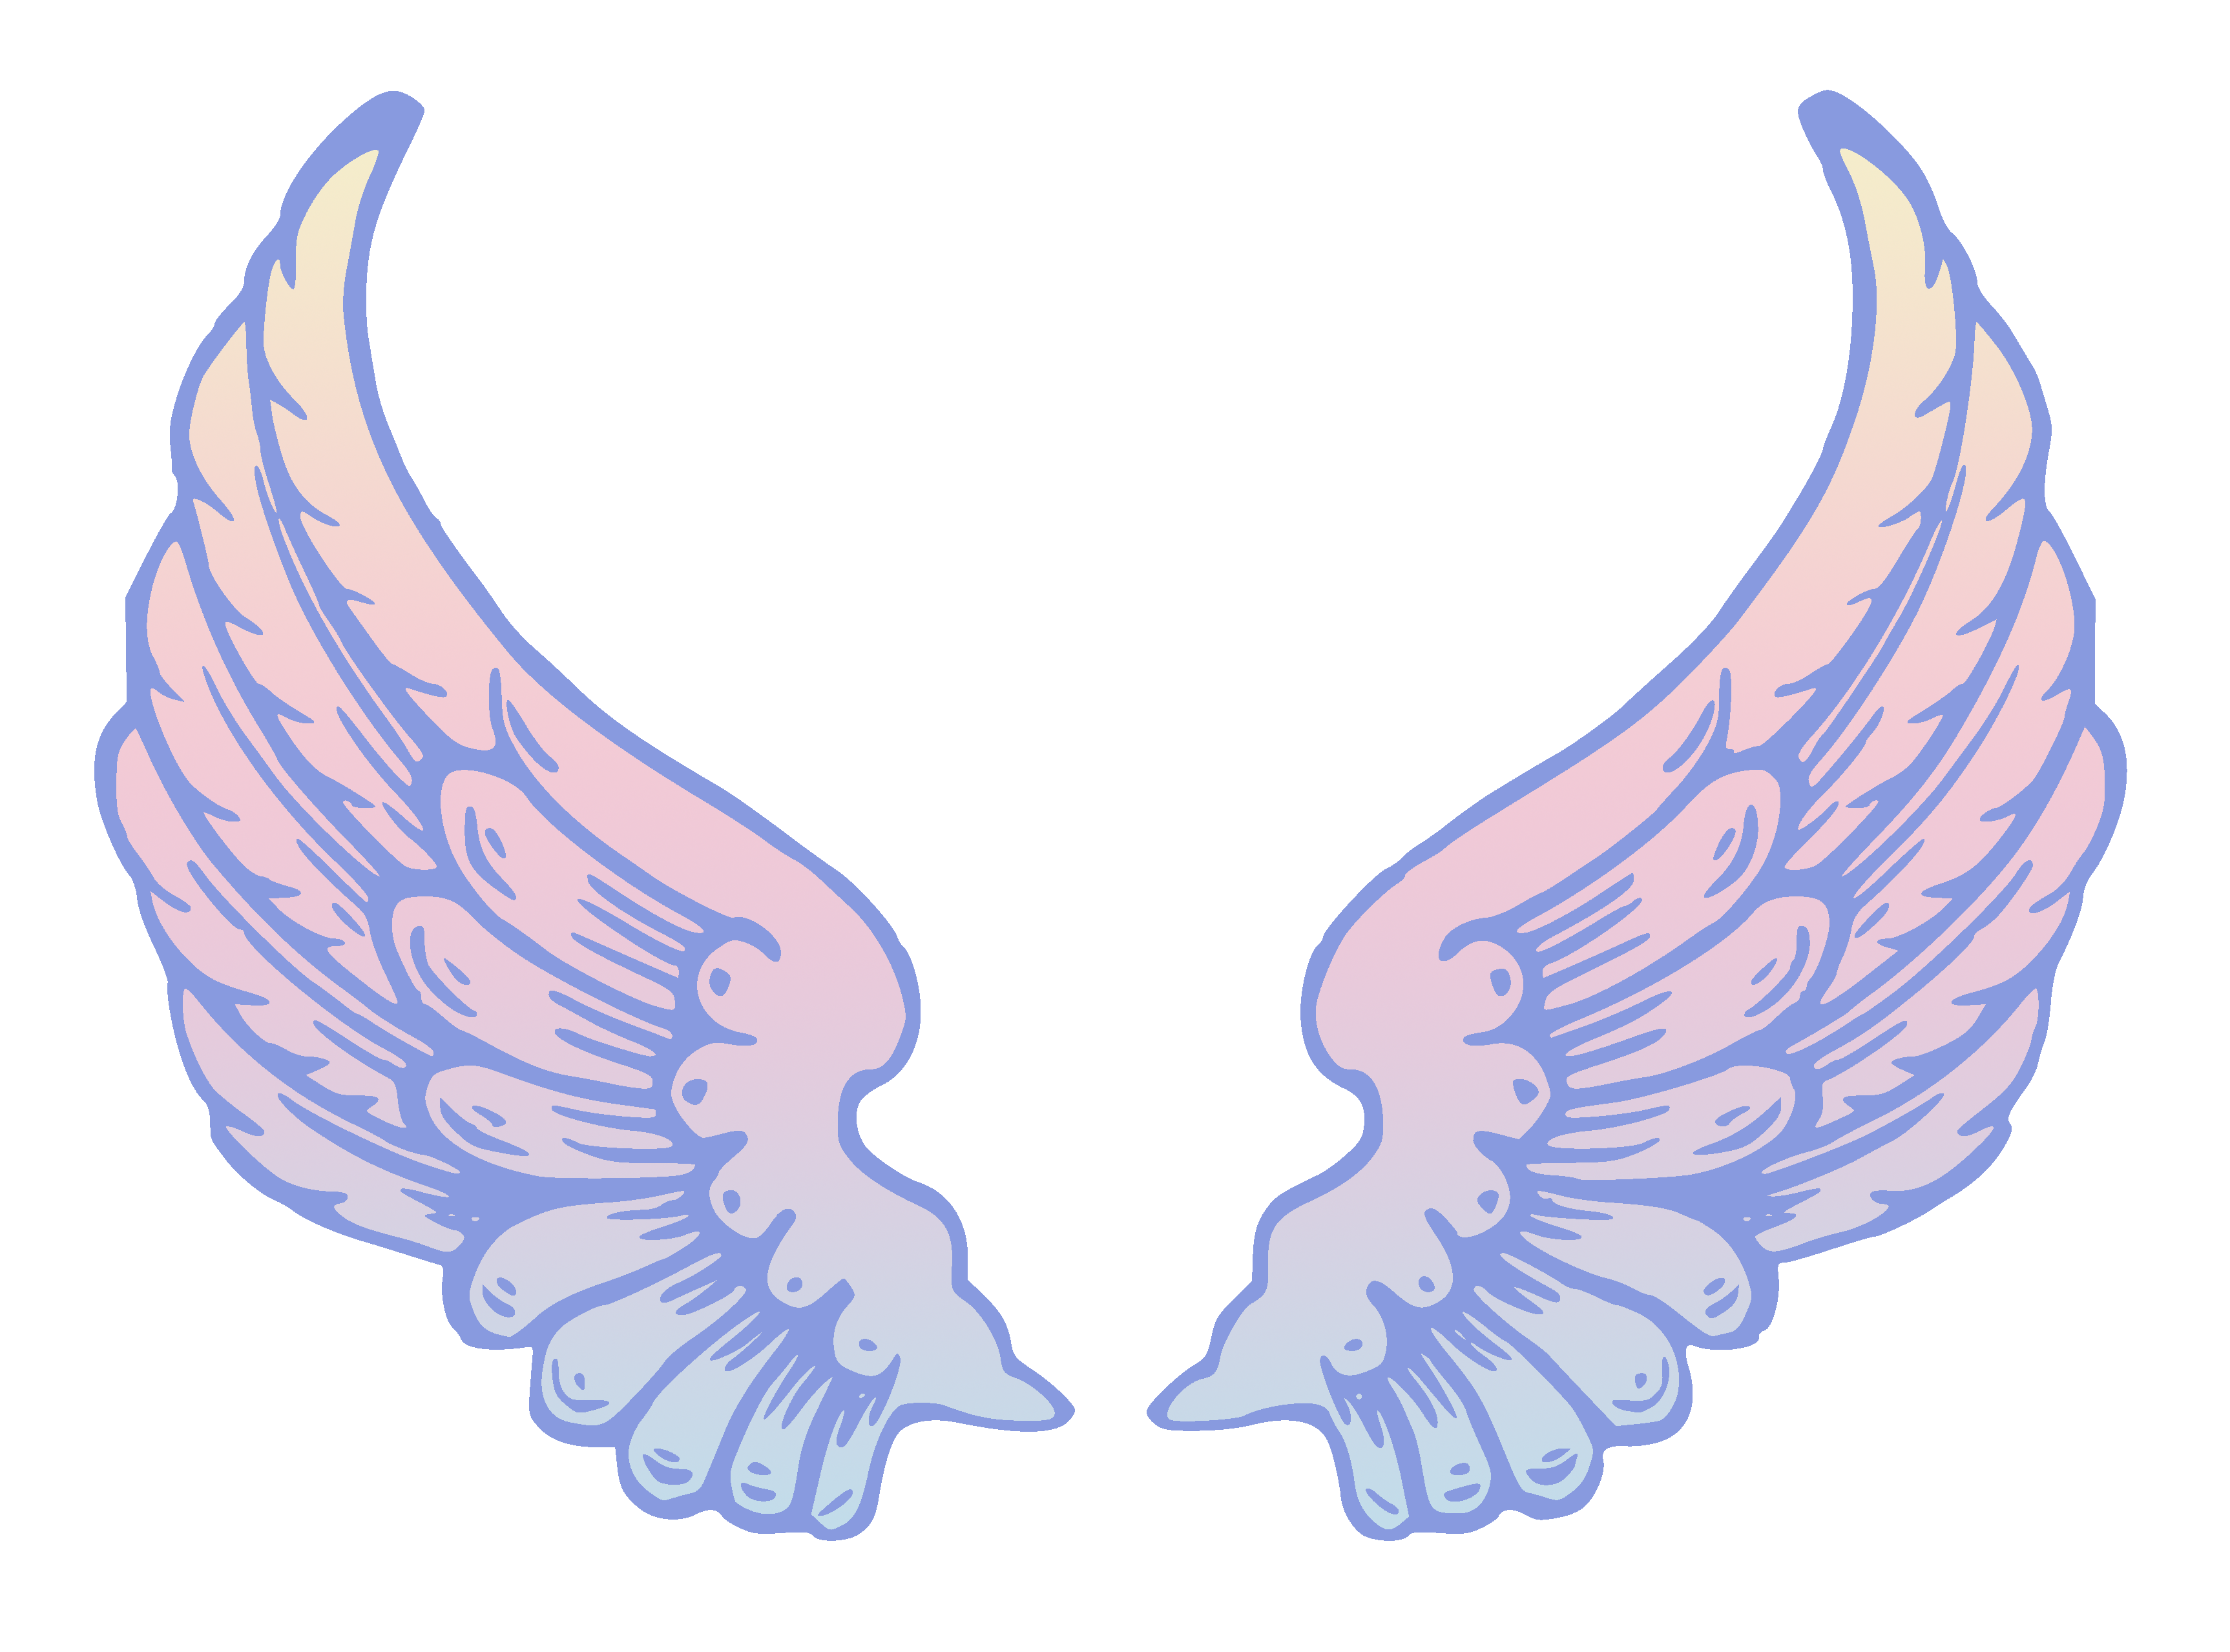 Wings angel clipart clipart download Public Domain Pastel Angel Wings - Free Clip Art clipart download